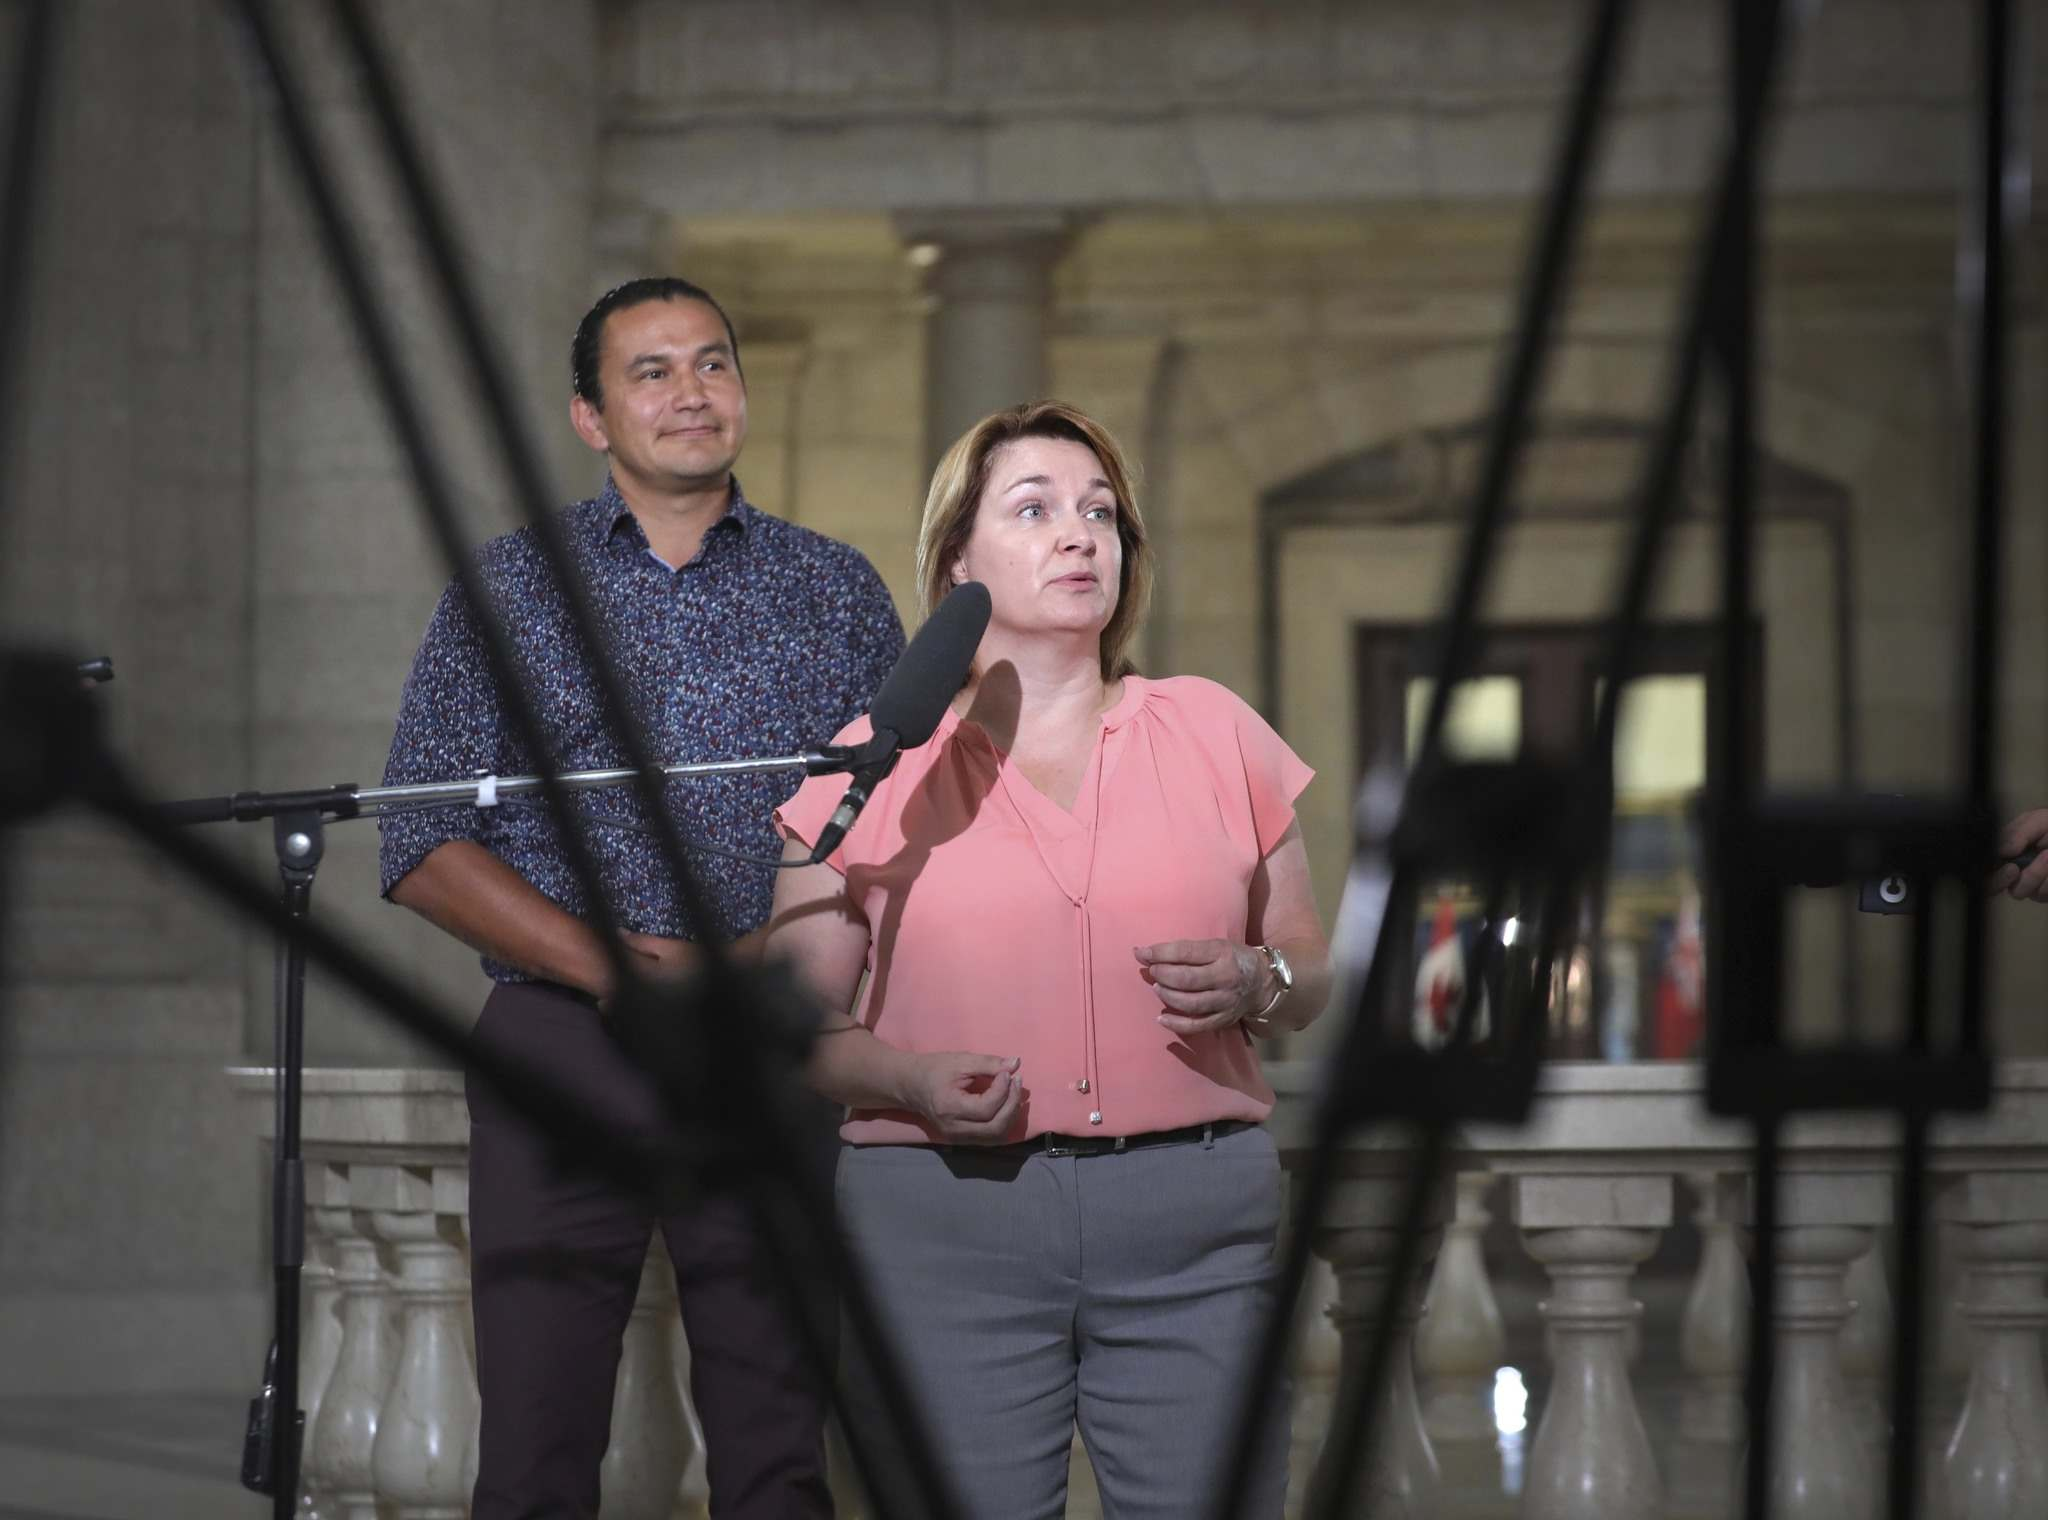 NDP leader Wab Kinew and UFCW secretary-treasurer Bea Bruske say there needs to be universal paid sick leave of 100 per cent of an employee's salary during the pandemic. (Ruth Bonneville / Winnipeg Free Press)</p>